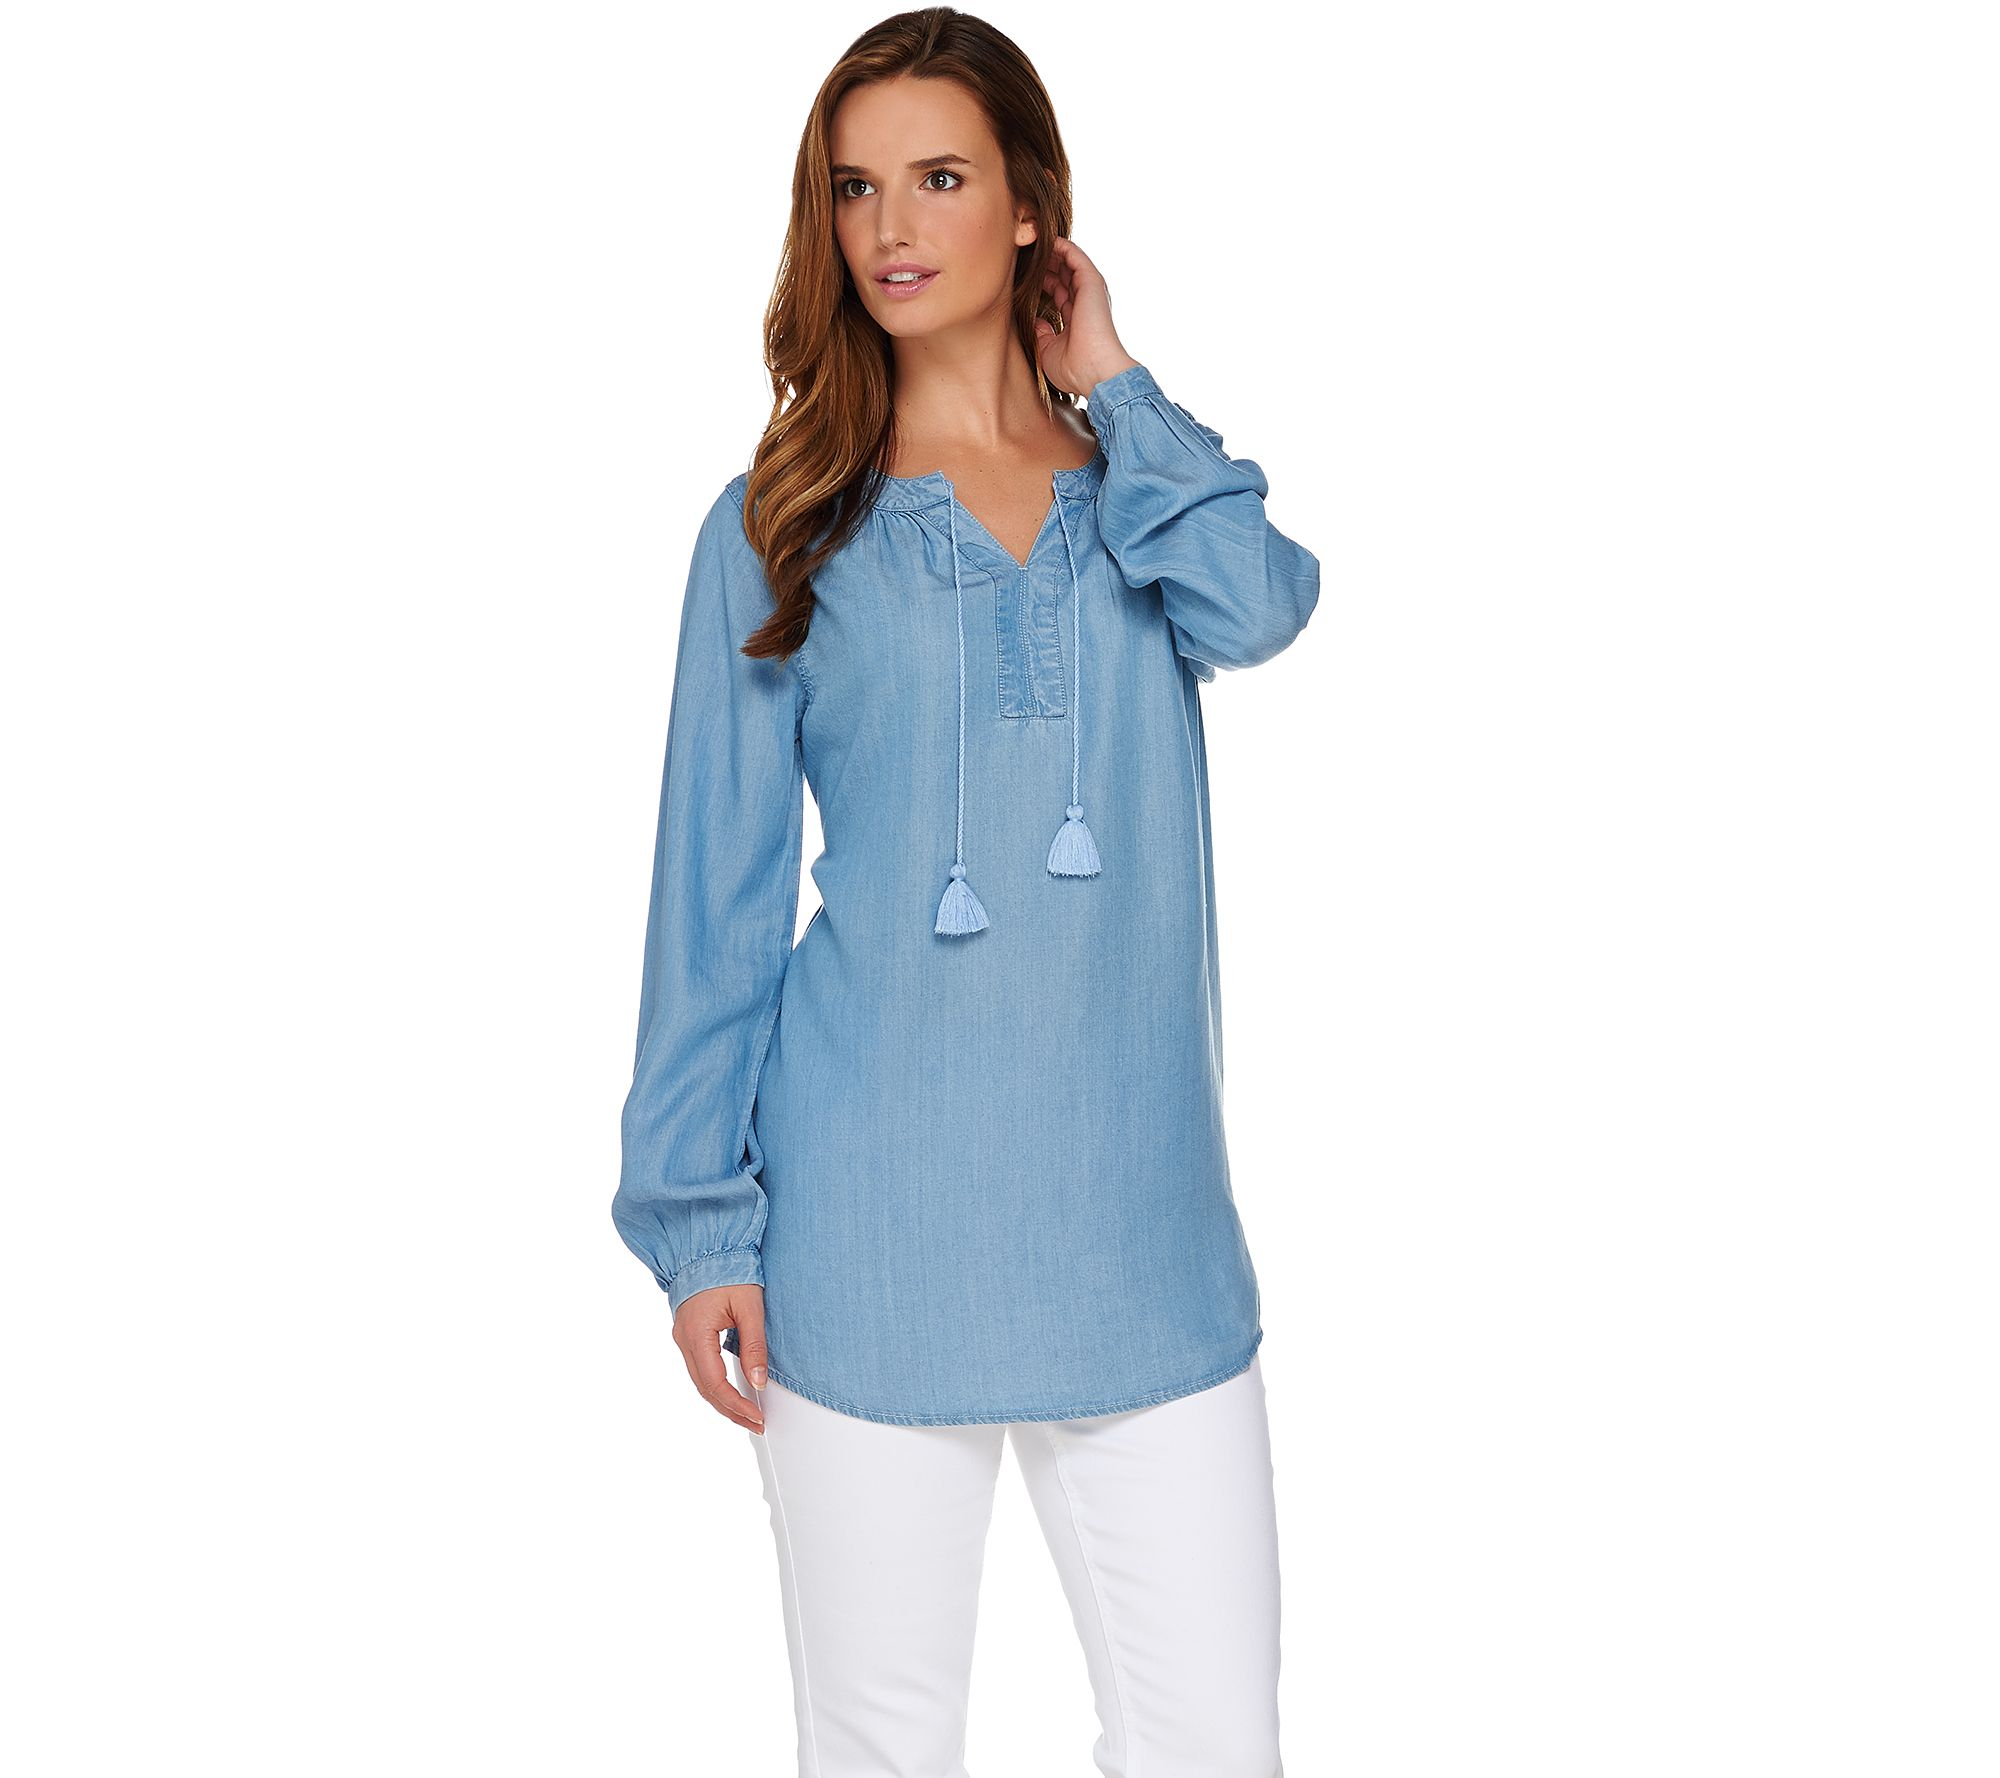 denim tunic long sleeve tencel denim peasant tunic - page 1 - qvc.com wkuajgz